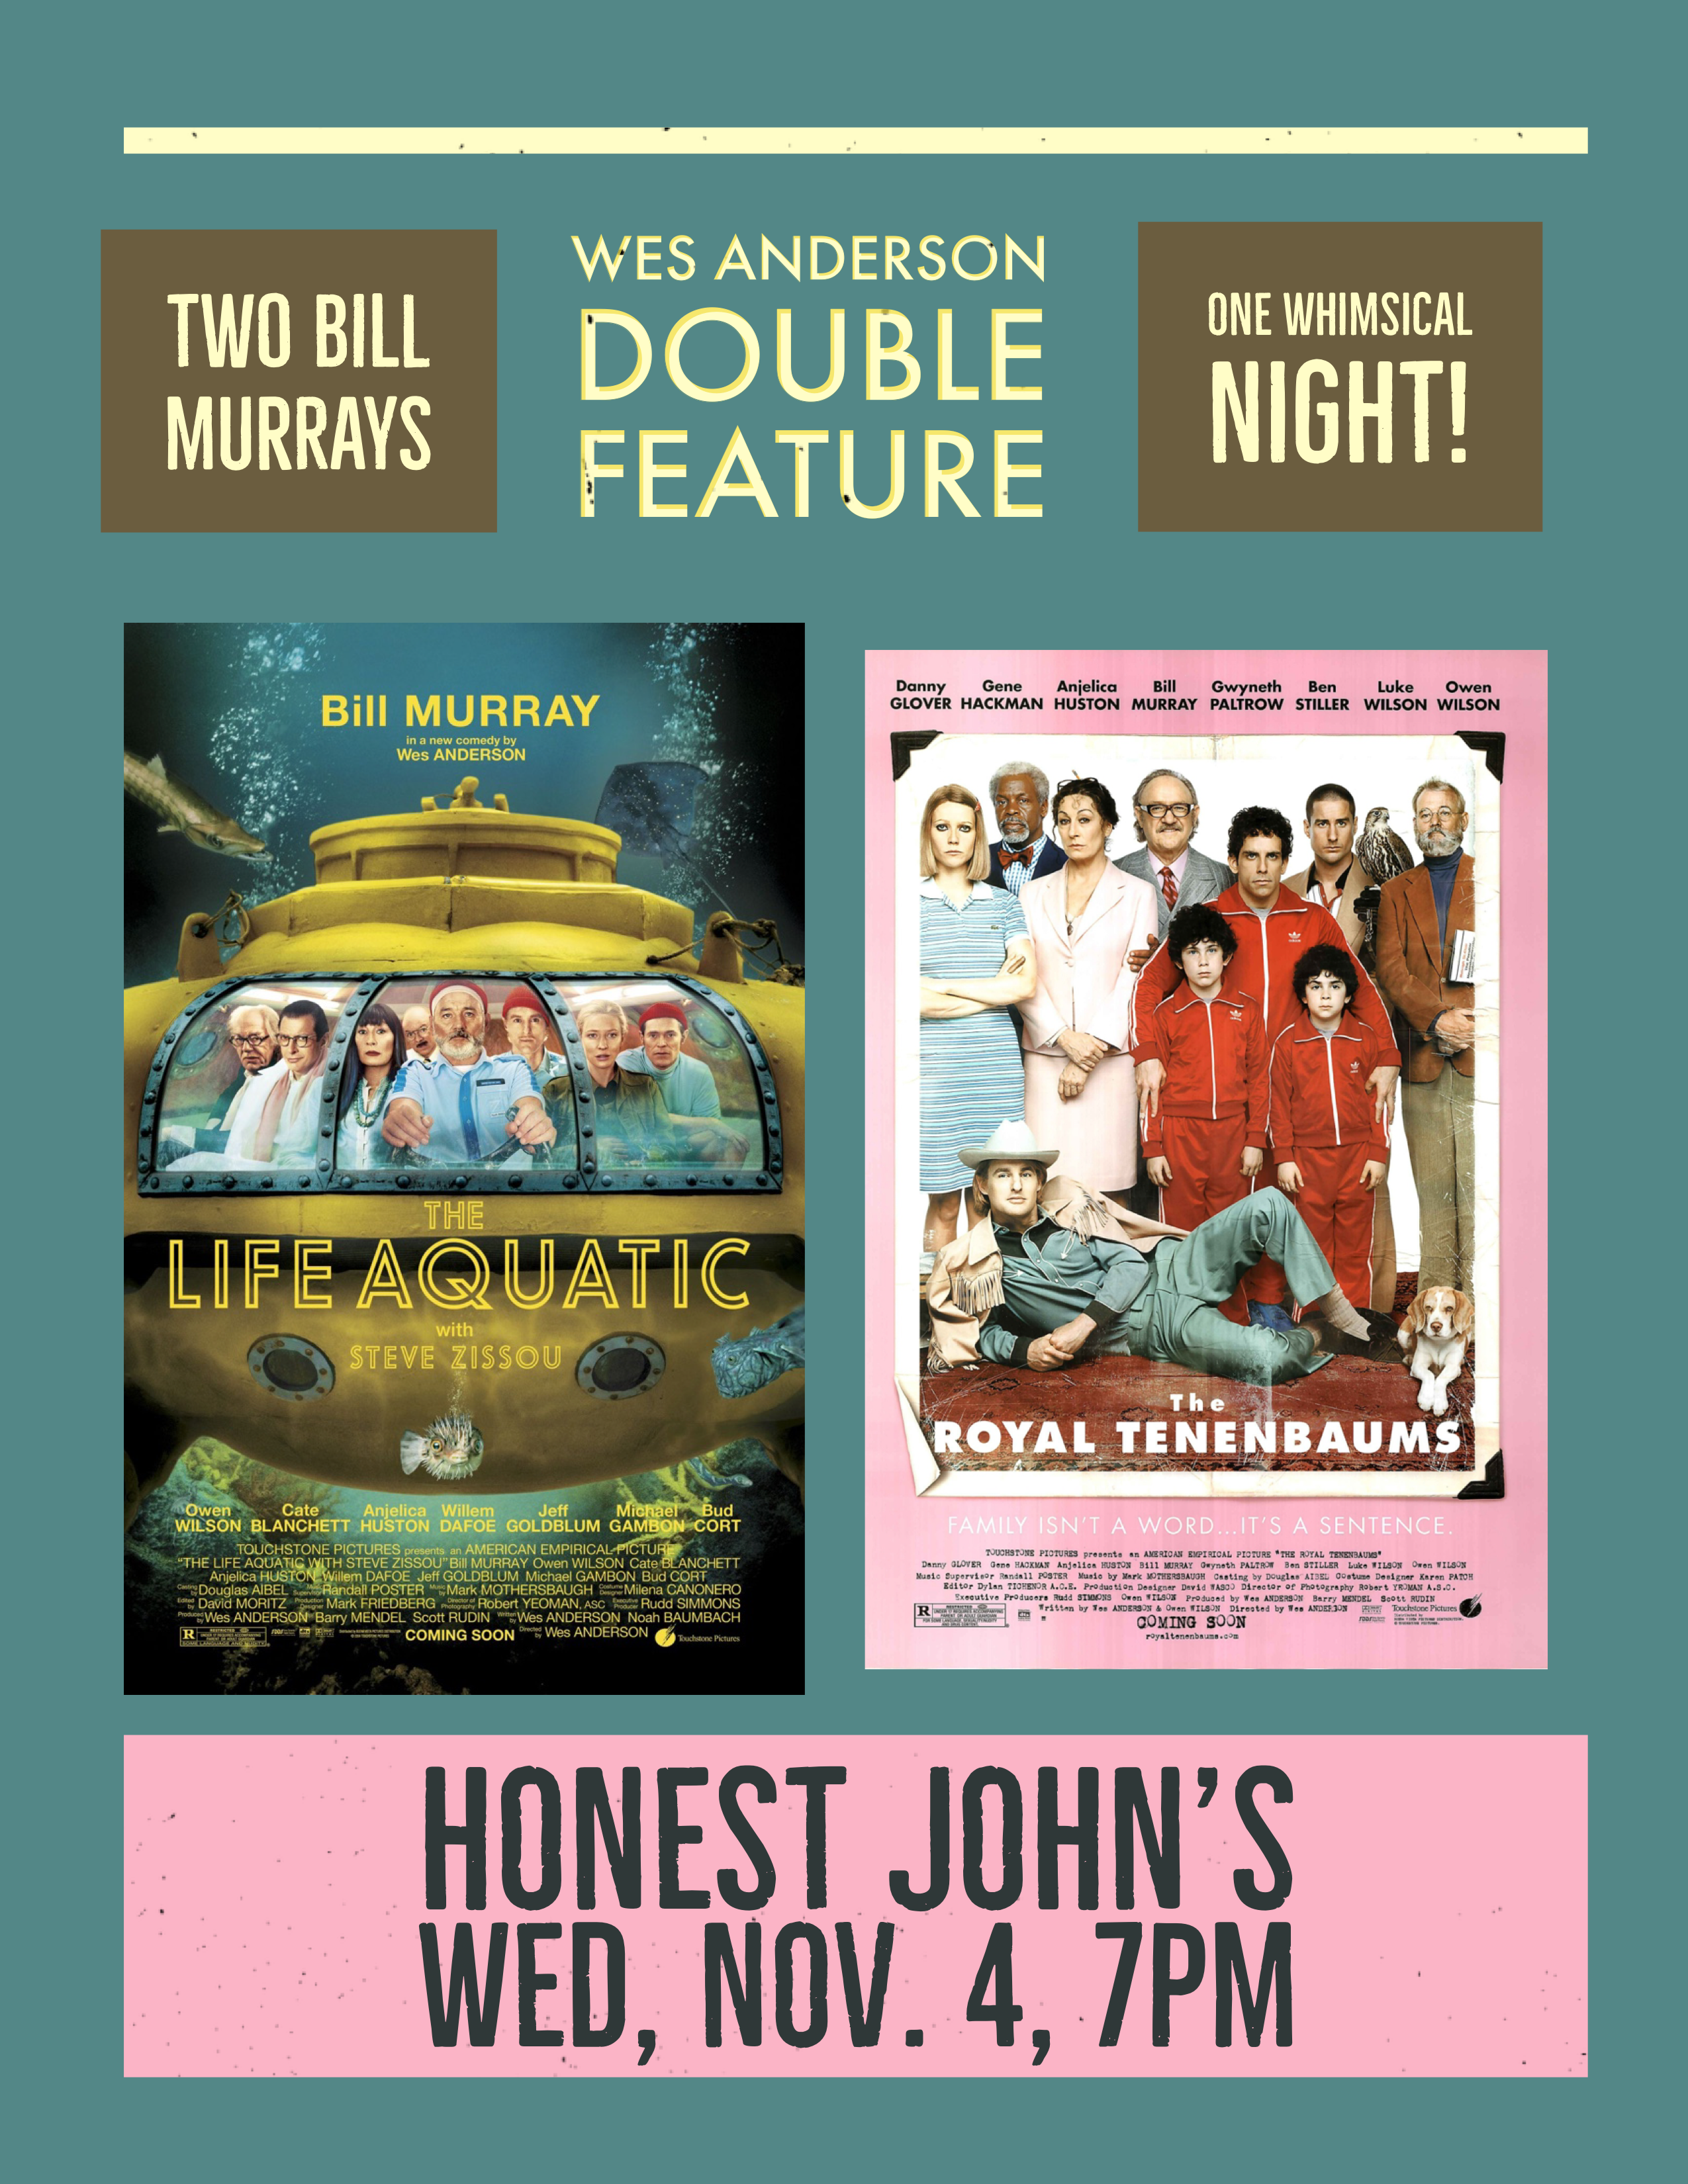 Poster for Wes Anderson Double Feature at Honest John's